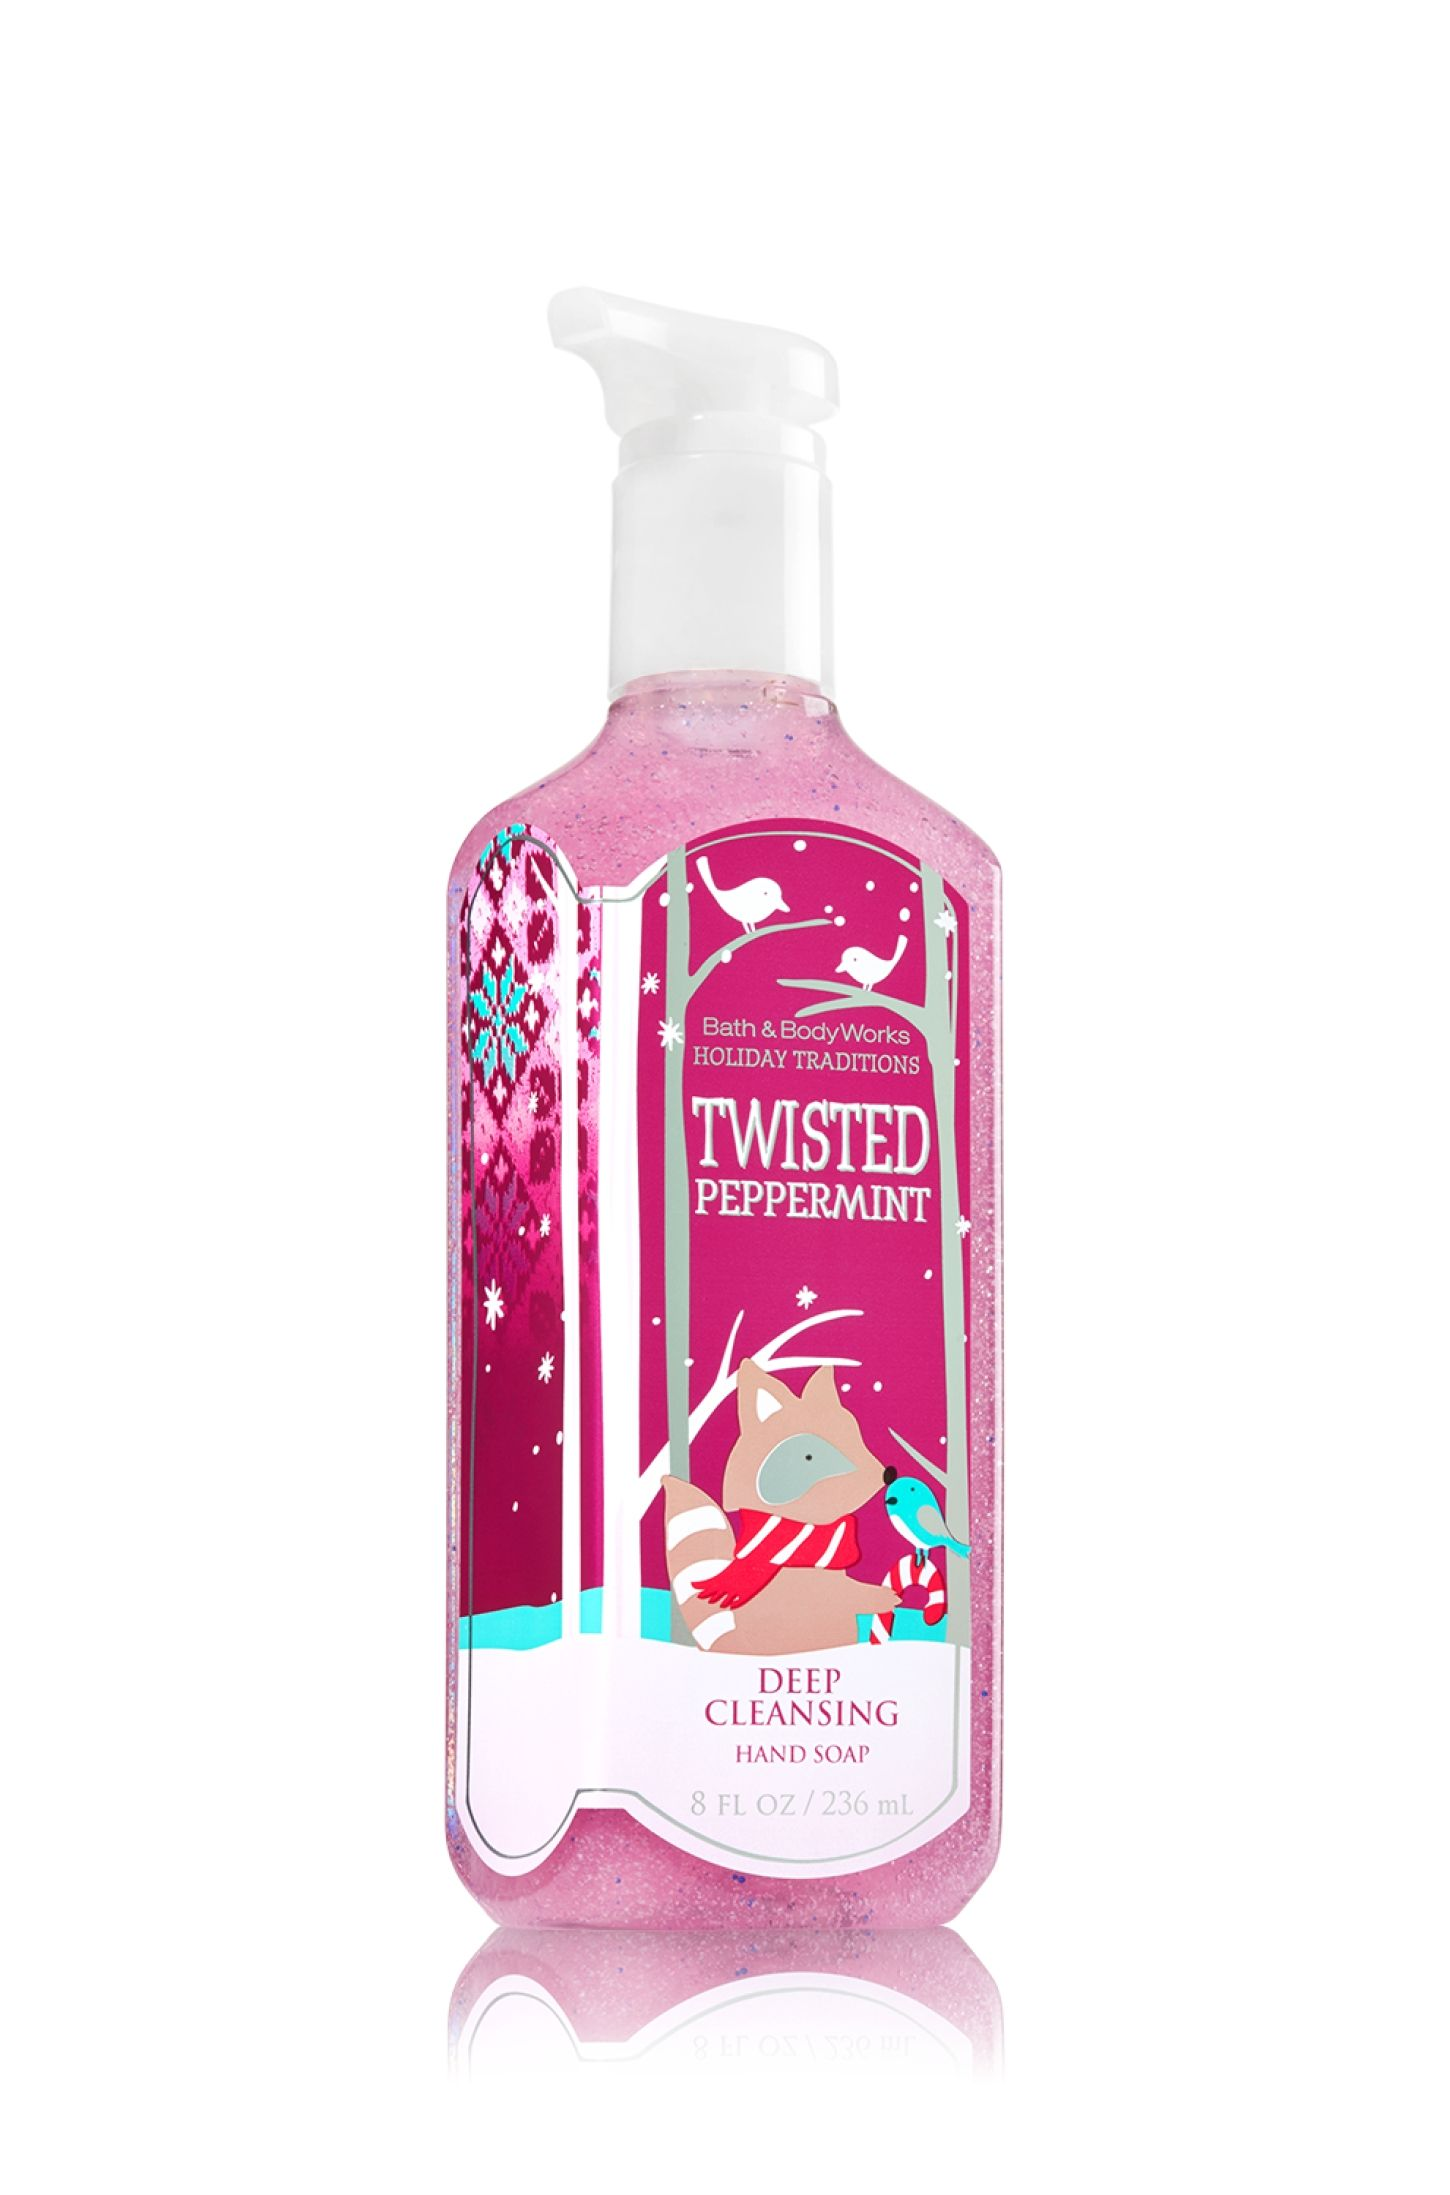 Twisted Peppermint Sanitizing Hand Gel Soap Sanitizer Bath